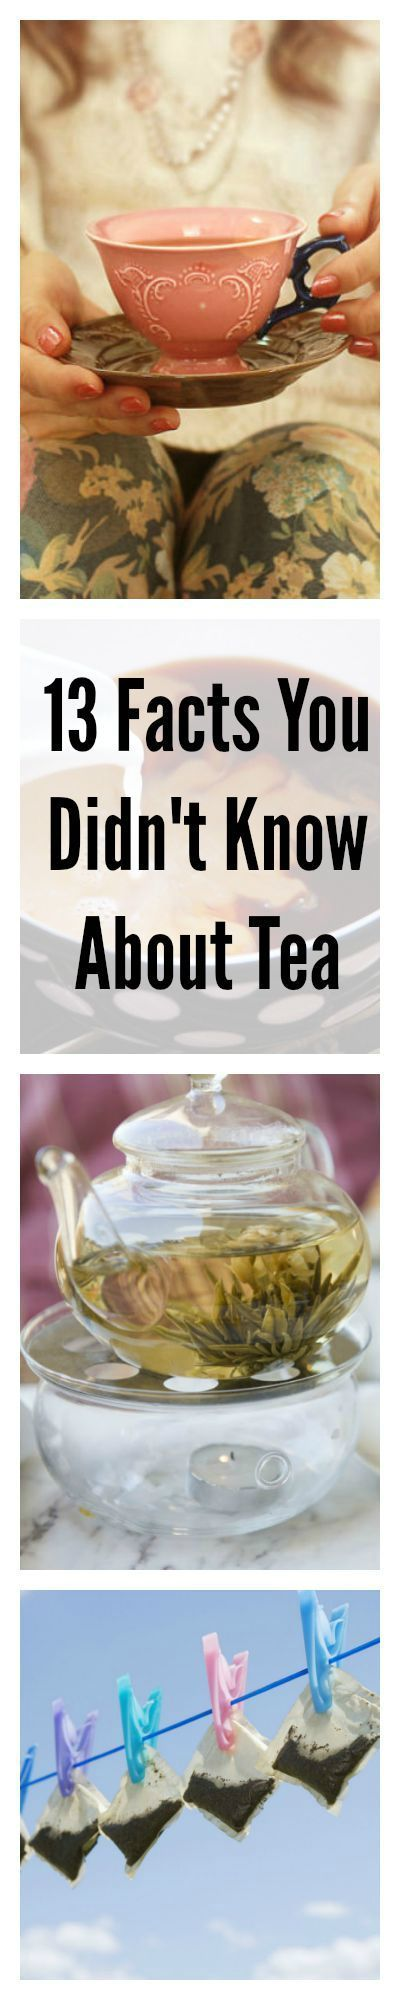 Like drinking tea? These facts will teach about the drink, how to brew it, and why to drink even more of it. There's always more to learn (and love) about the world's most widely consumed beverage.